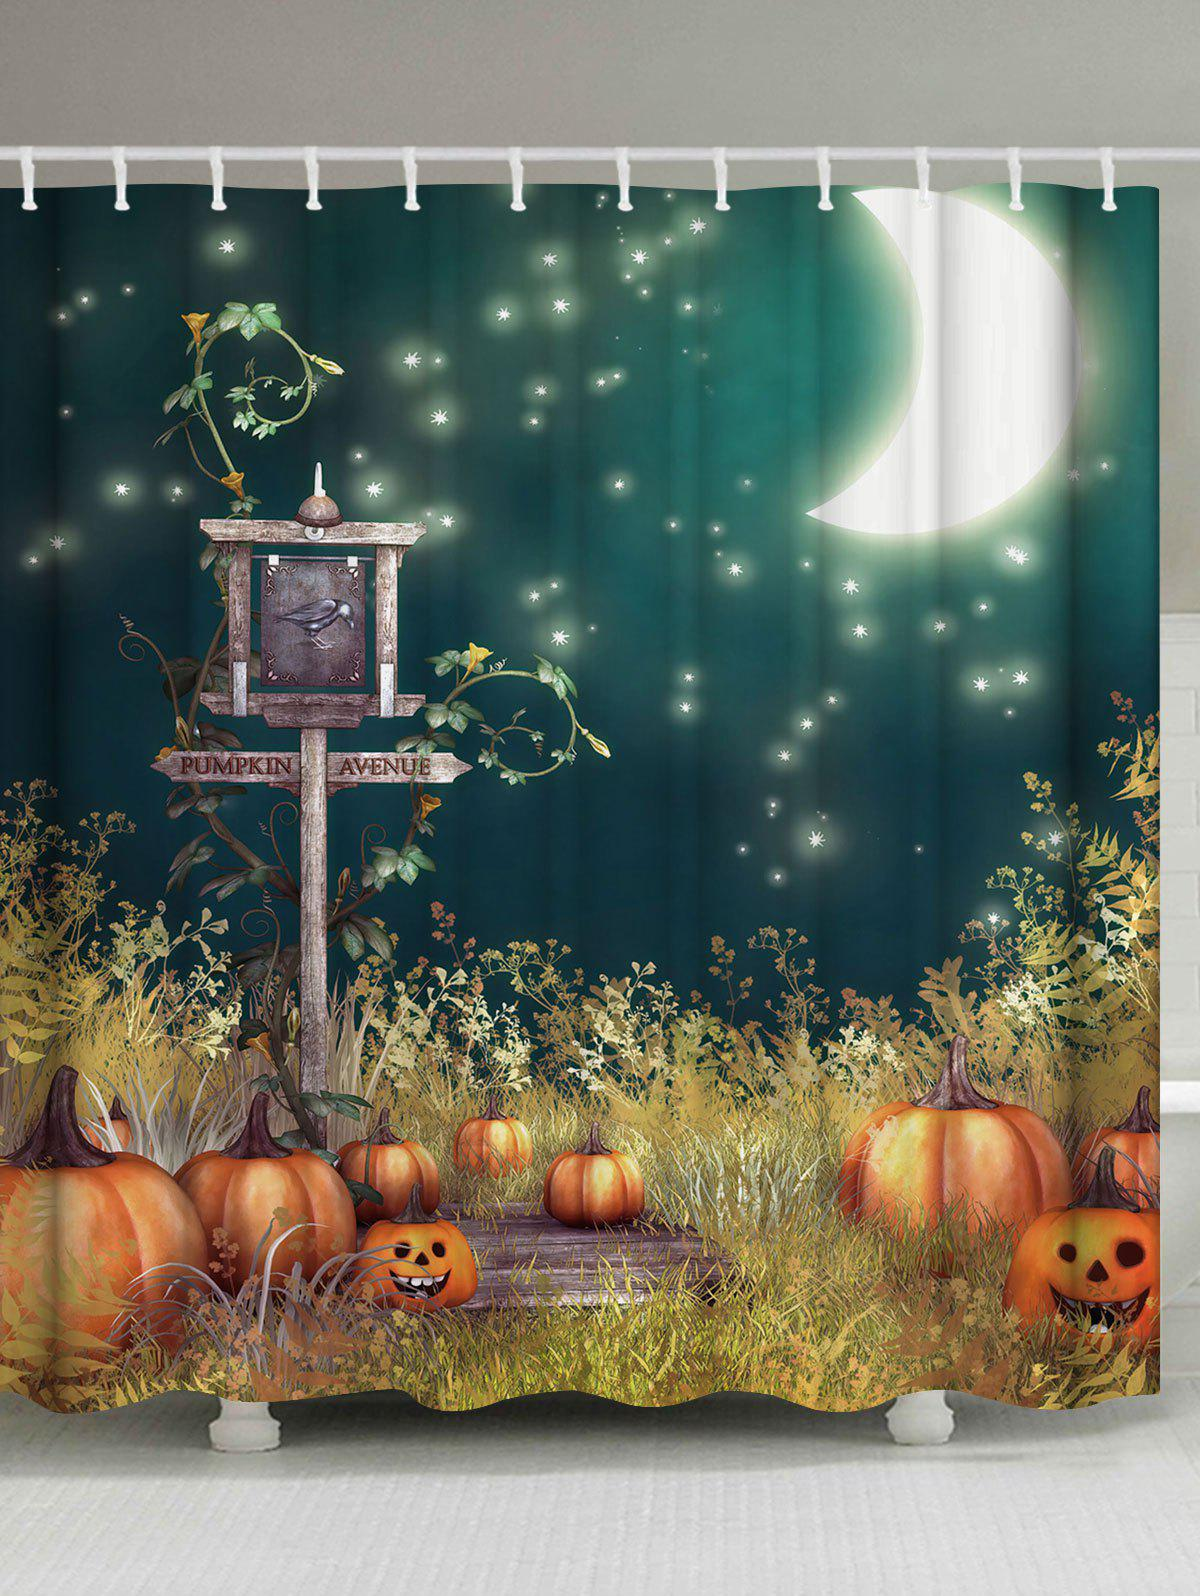 Moonnight Pumpkin Fabric Halloween Shower CurtainHOME<br><br>Size: W71 INCH * L71 INCH; Color: COLORMIX; Products Type: Shower Curtains; Materials: Polyester; Pattern: Print,Pumpkin; Style: Festival; Number of Hook Holes: W59 inch*L71 inch: 10; W71 inch*L71 inch: 12; W71 inch*L79 inch: 12; Package Contents: 1 x Shower Curtain 1 x Hooks (Set);